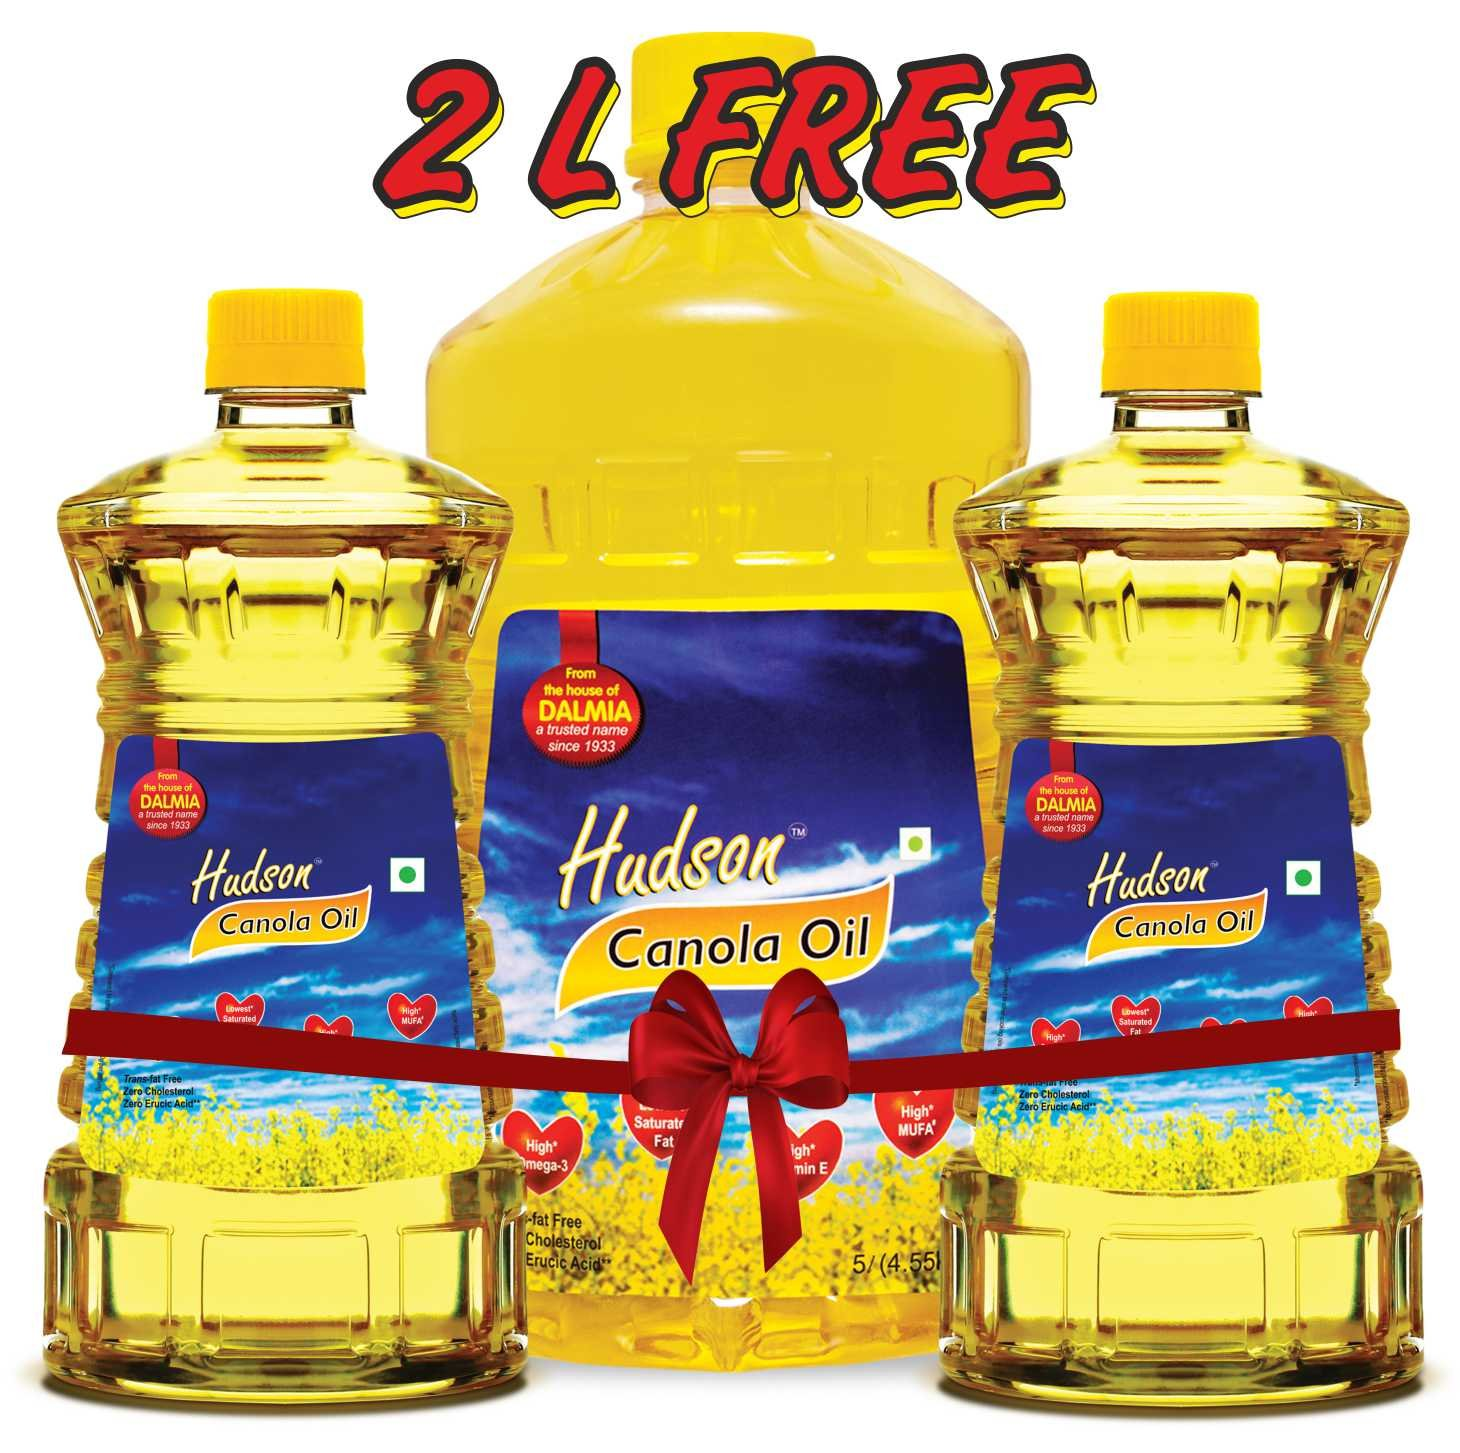 Free Oil 2L with Hudson Canola Oil, 5L